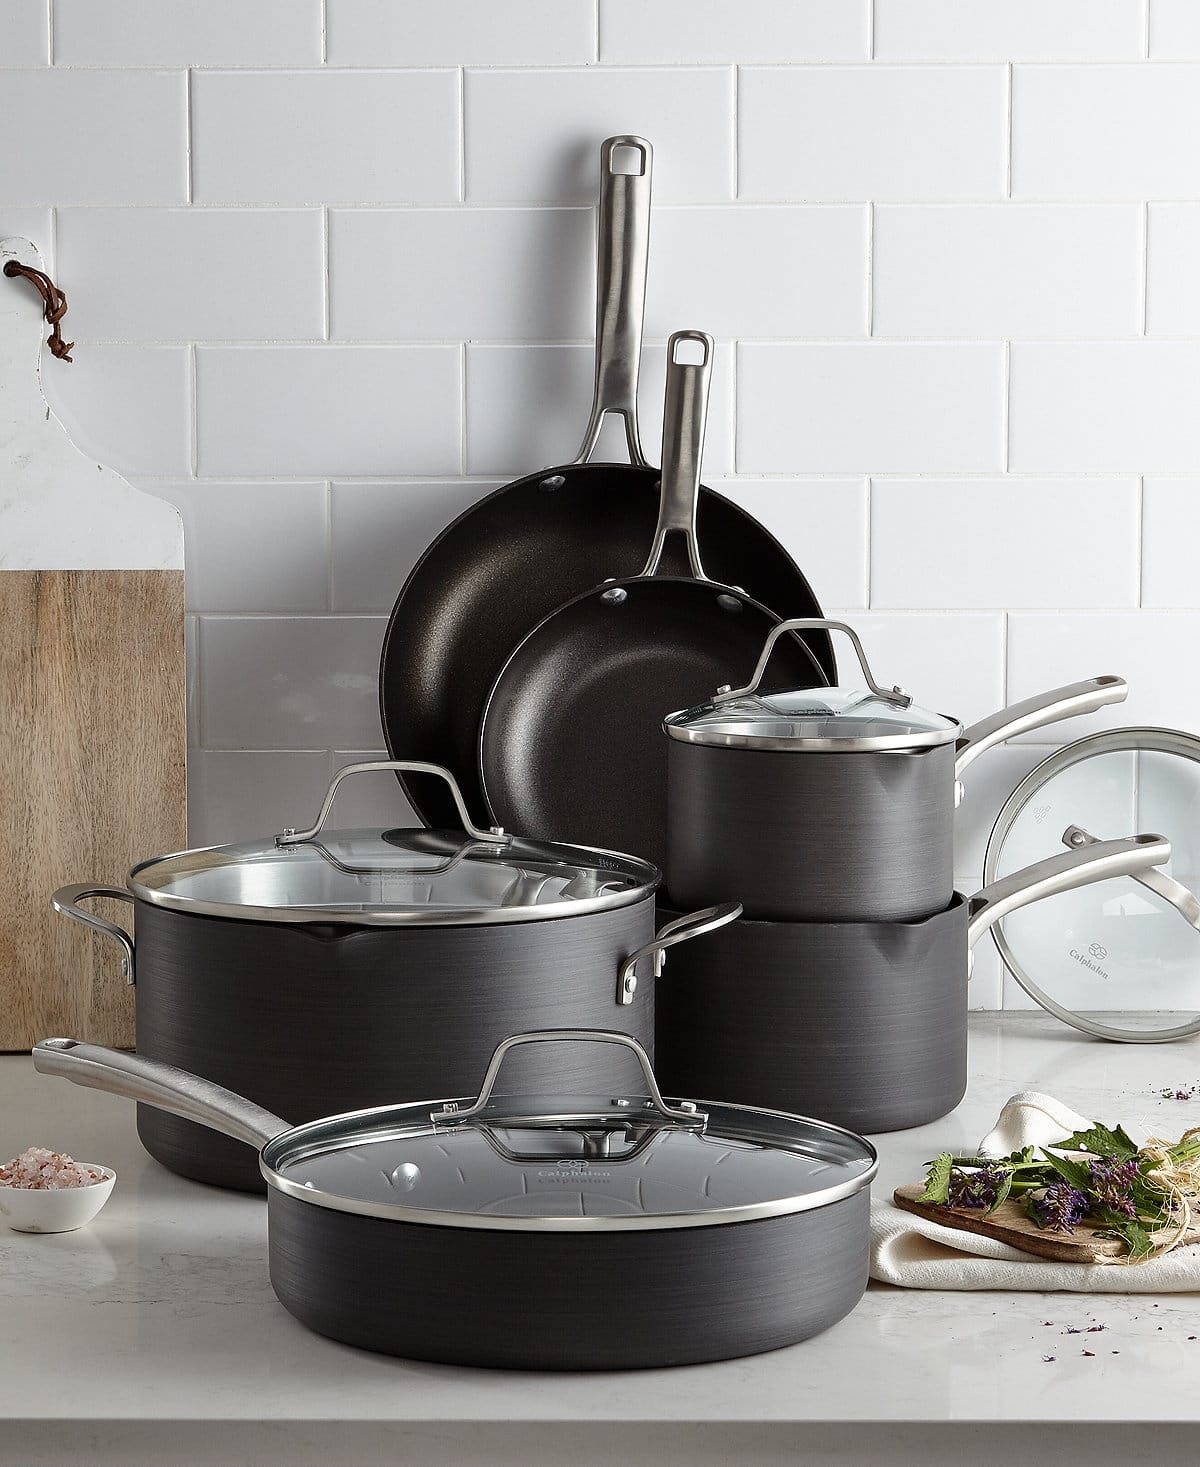 "Calphalon Classic 10pc Cookware set with free 12"" all purpose pan w/lid $140 at Macy's (plus cashback)"